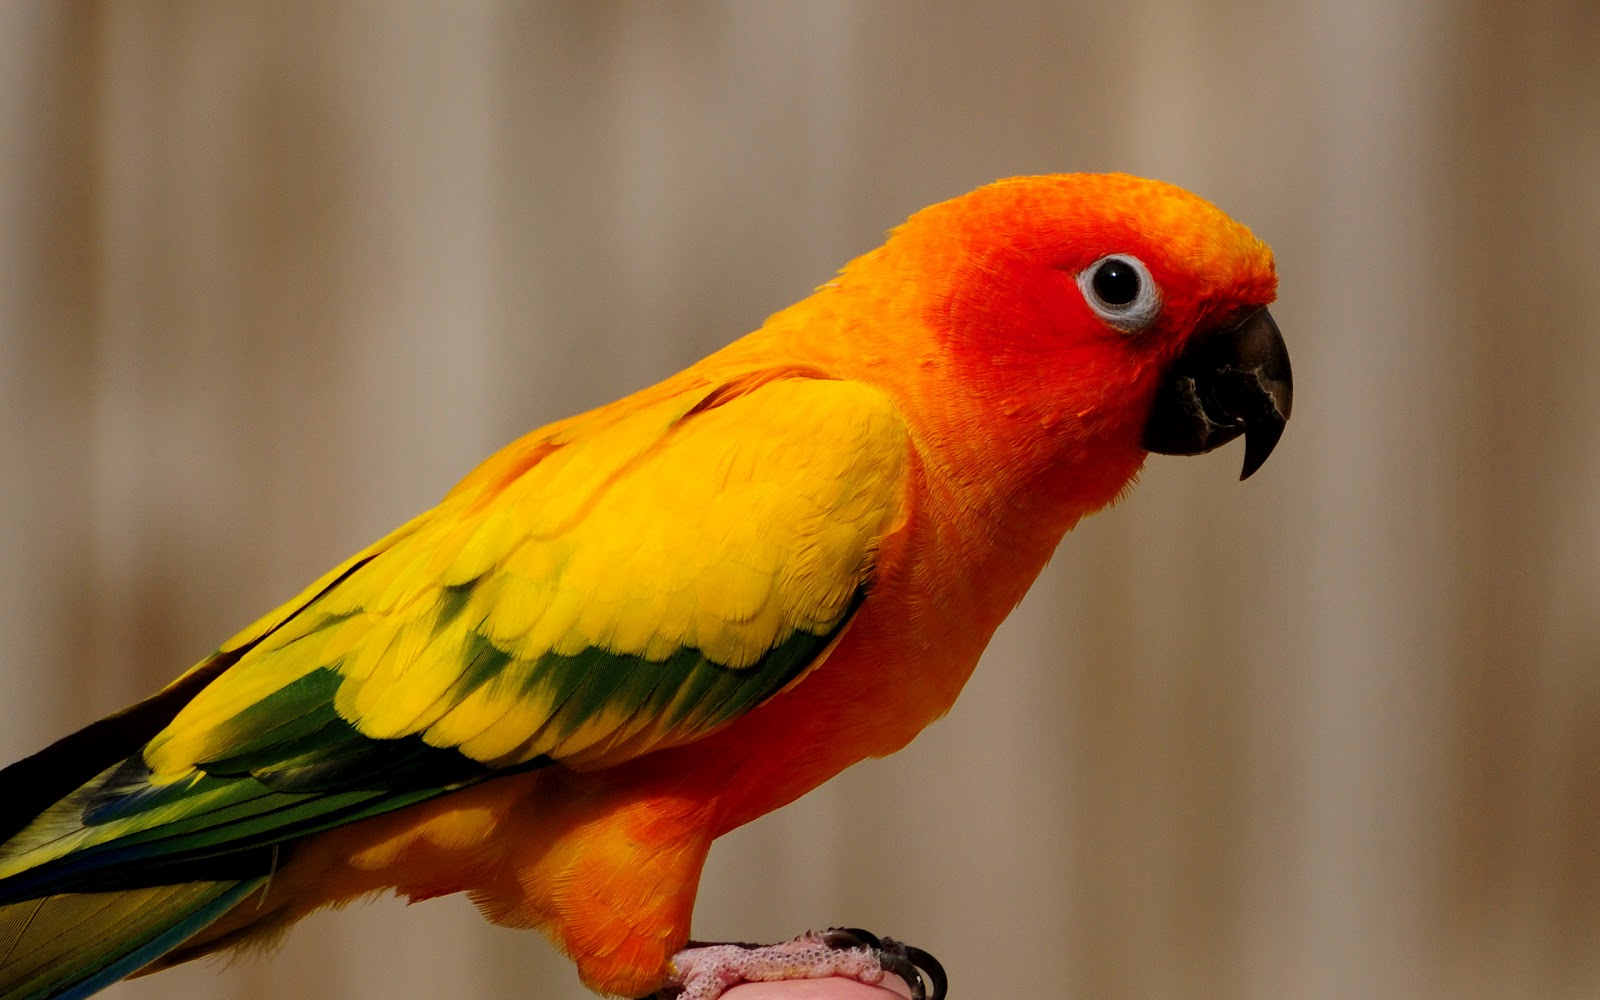 hd parrot wallpaper with a orange yellow parrot background picturejpg 1600x1000